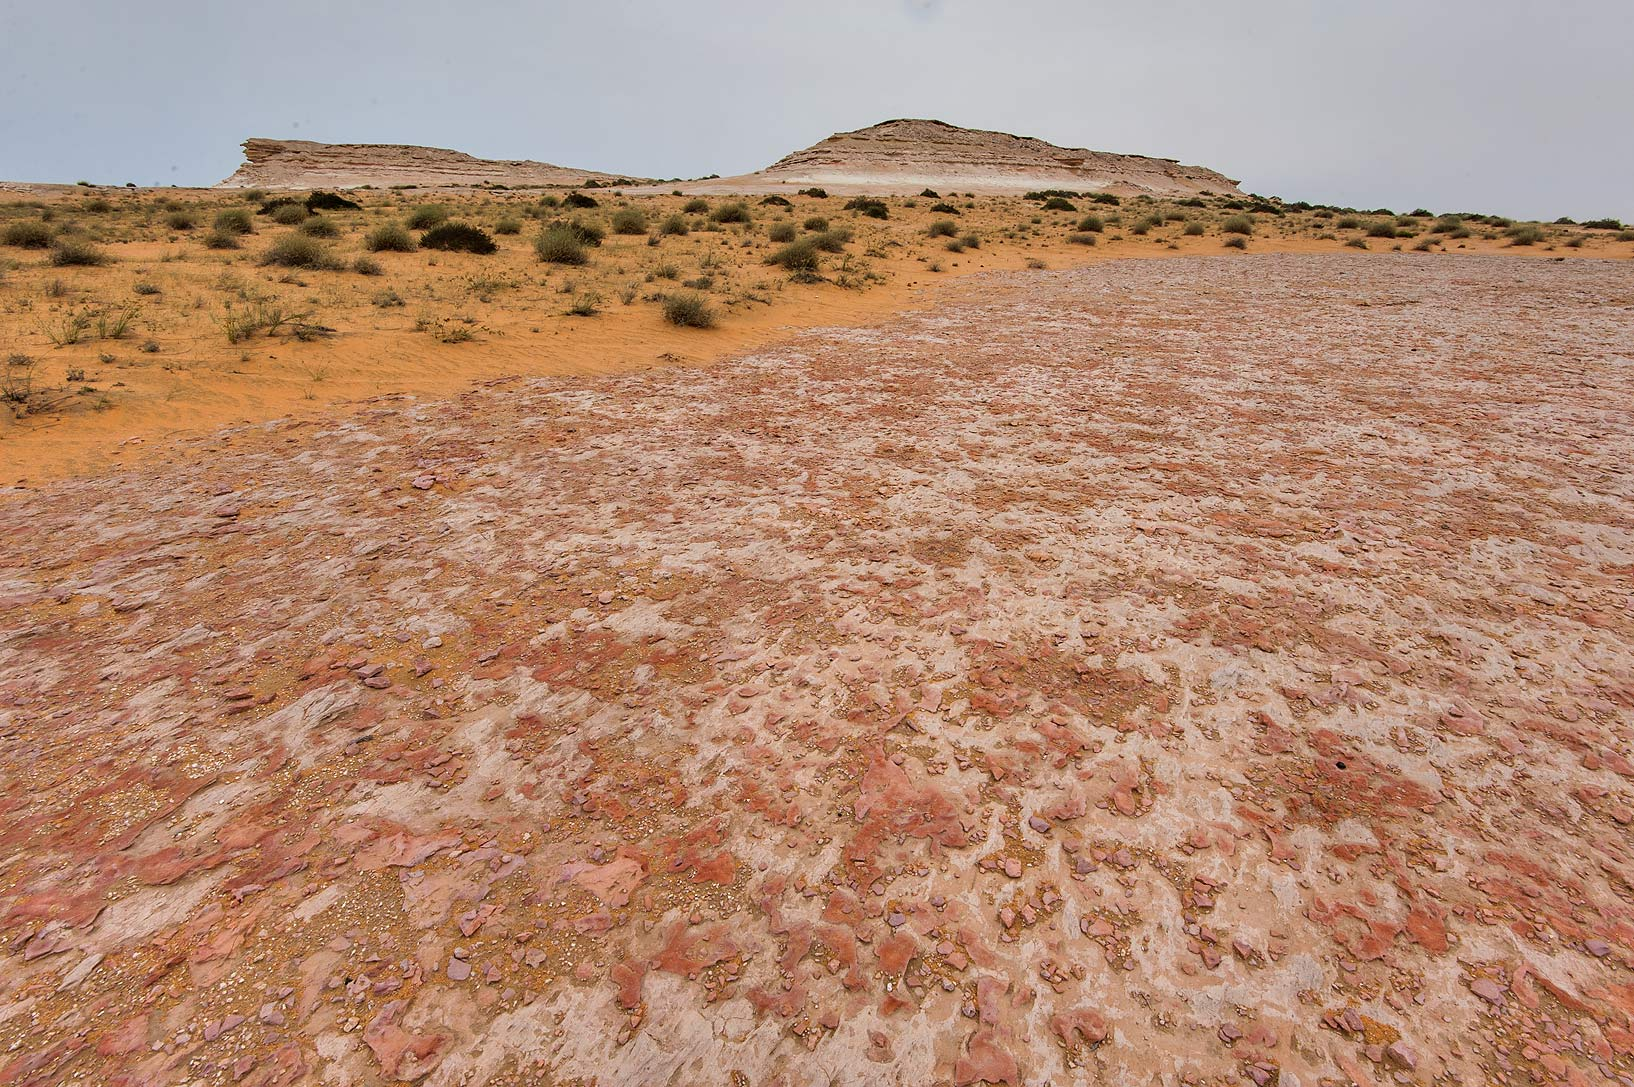 Washed dolomite plateau at the foot of a hill in...Reserve near Abu Samra. Southern Qatar